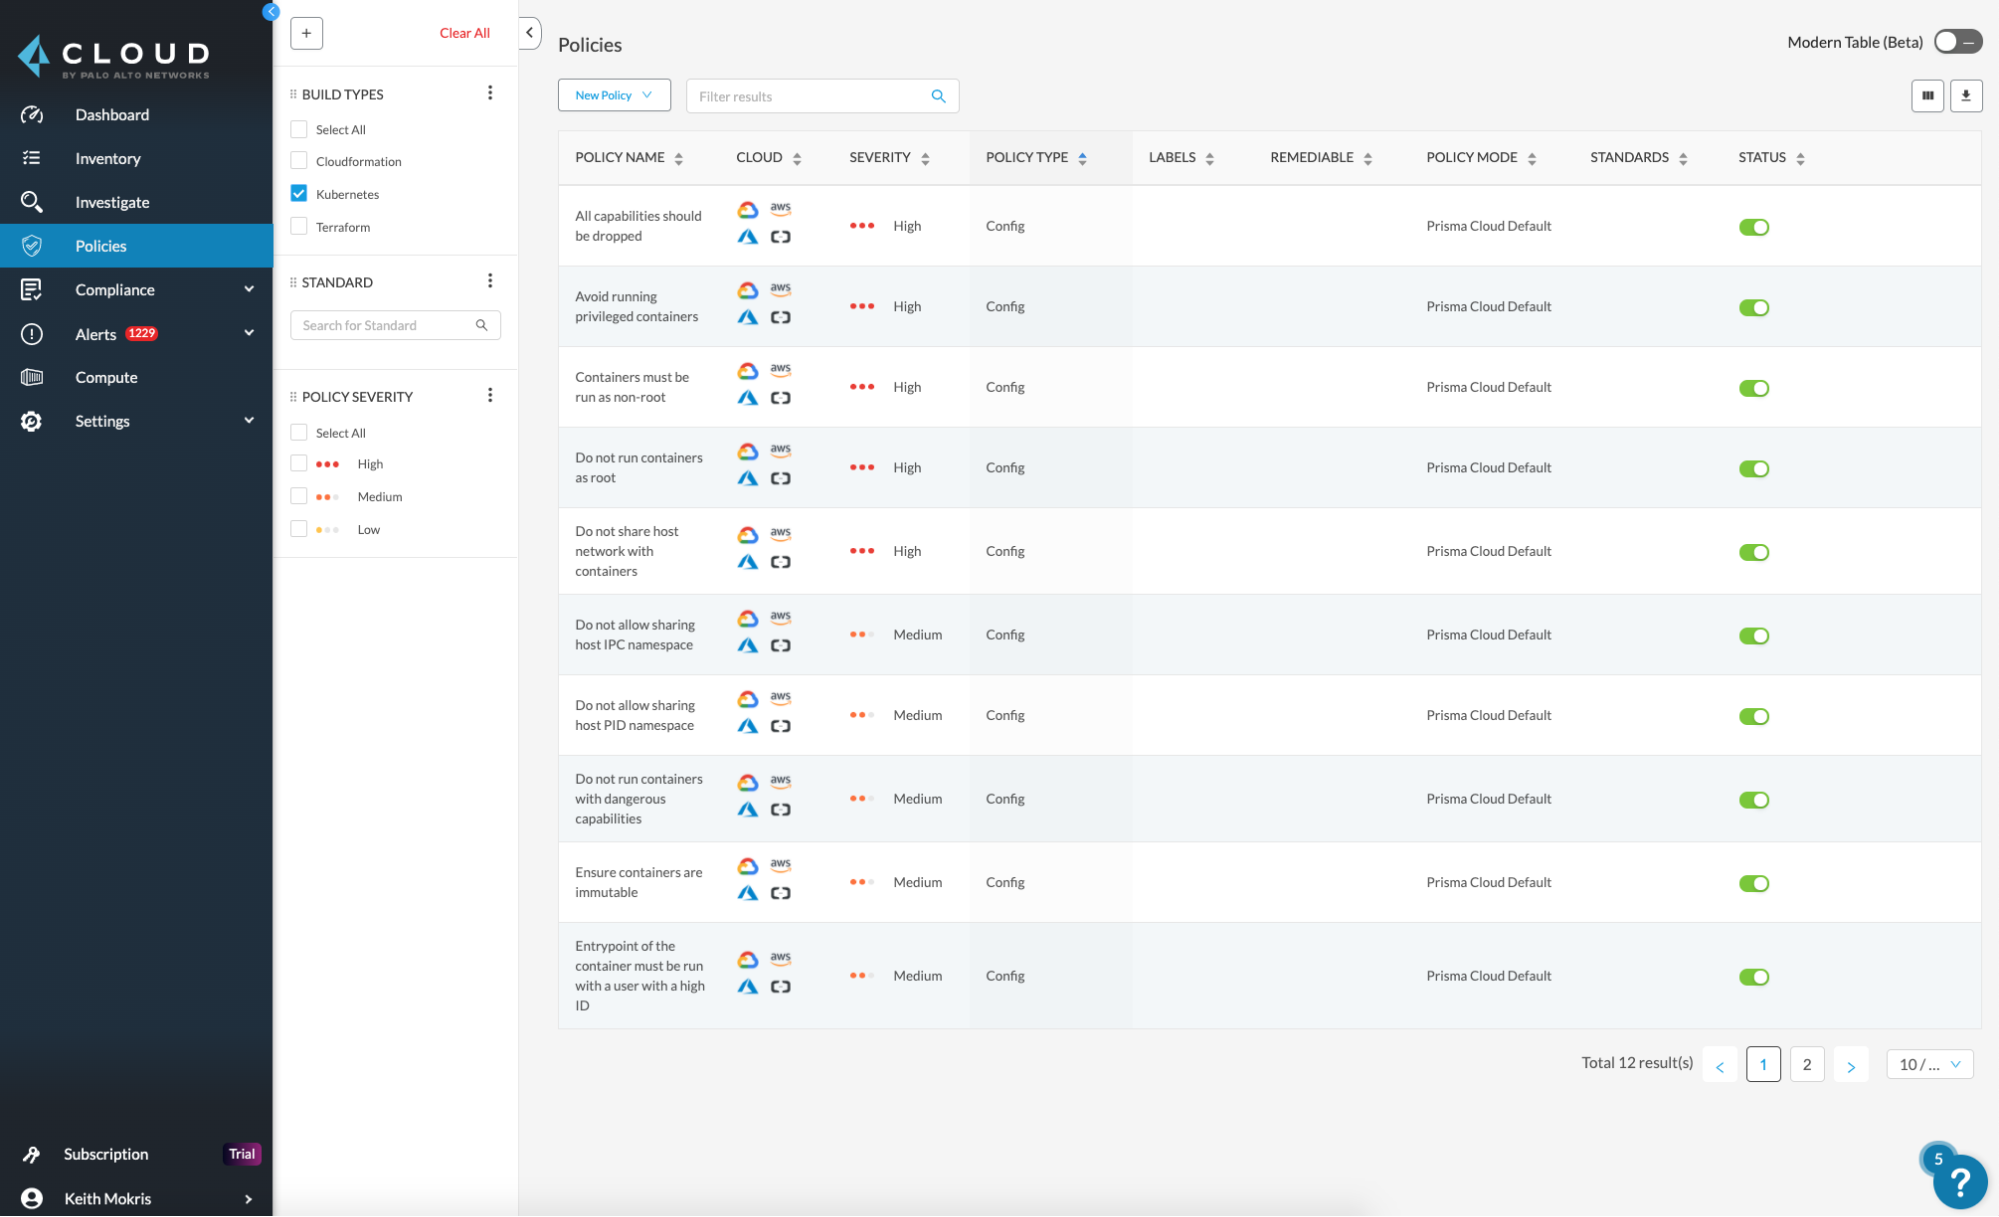 This screenshot shows an example of the Policy tab in Prisma Cloud, surfacing Kubernetes policies.